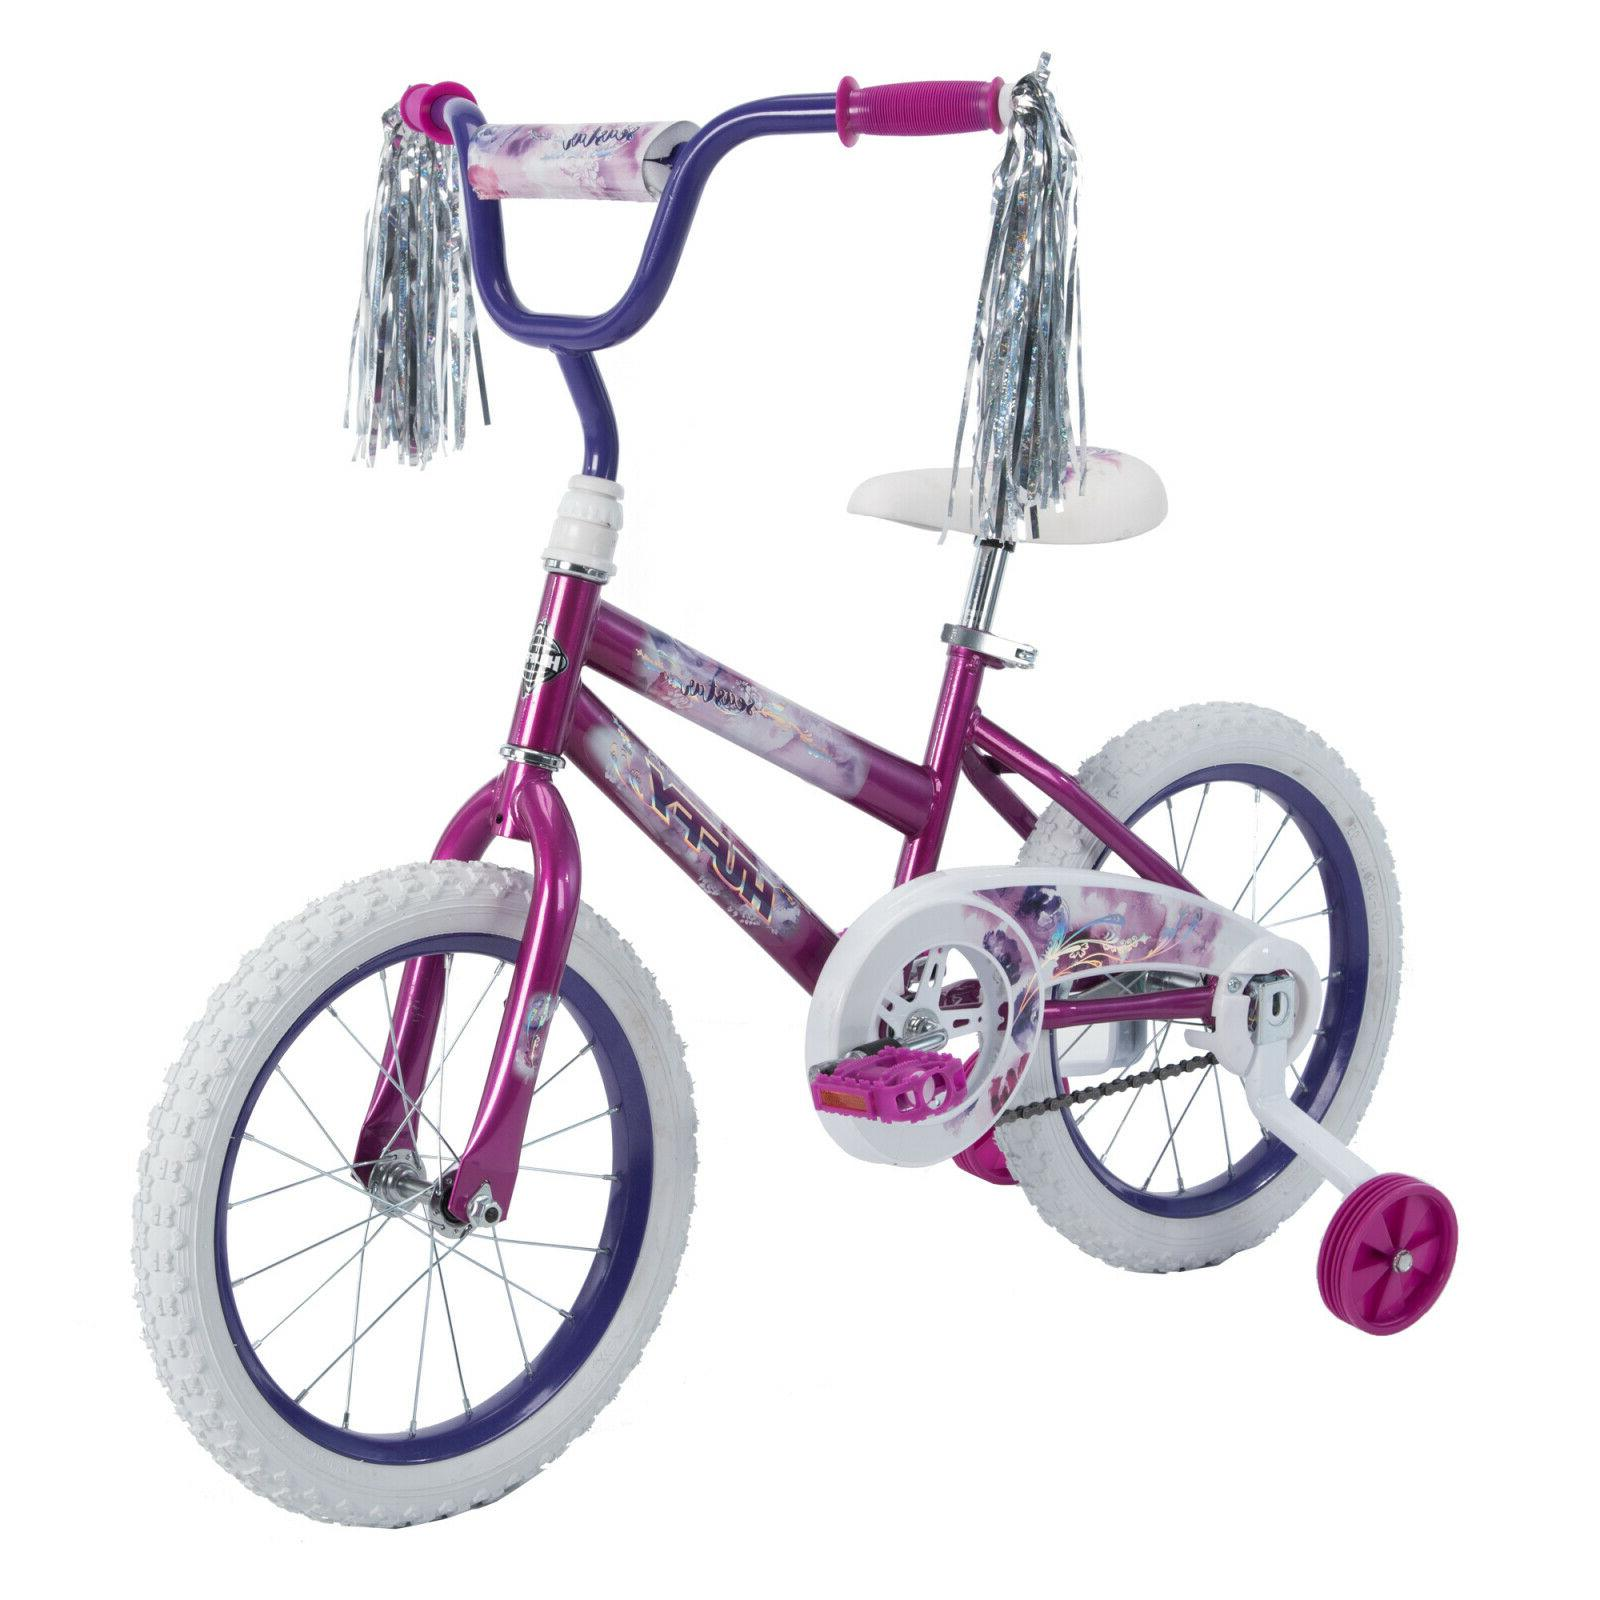 "Kids Bike Girls Boys 16"" Training Wheels Riding Ride On Outd"